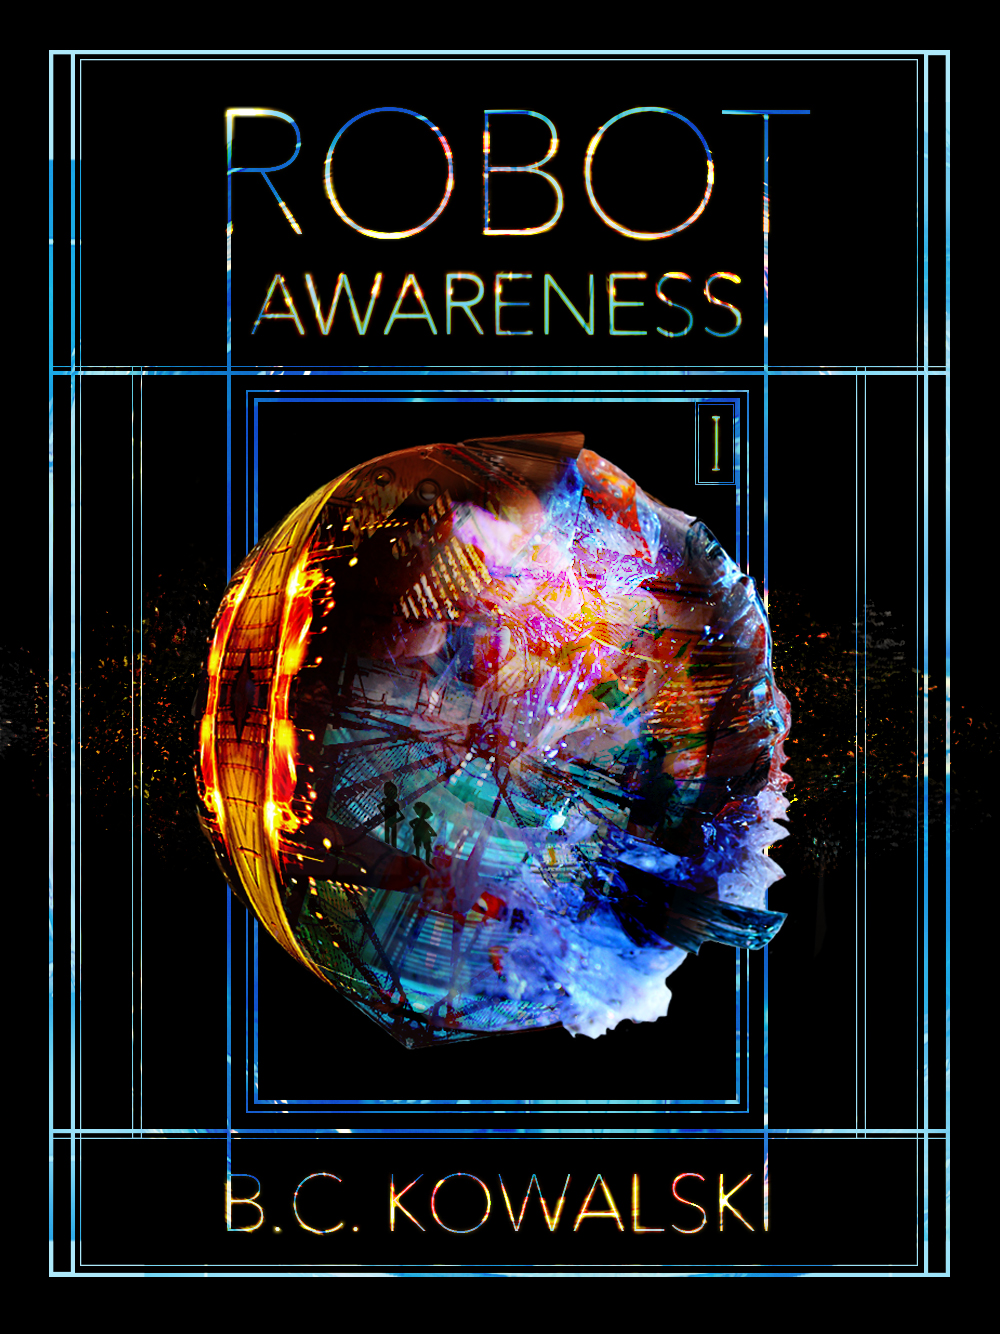 Robot Awareness, amwriting, indiepub, science fiction